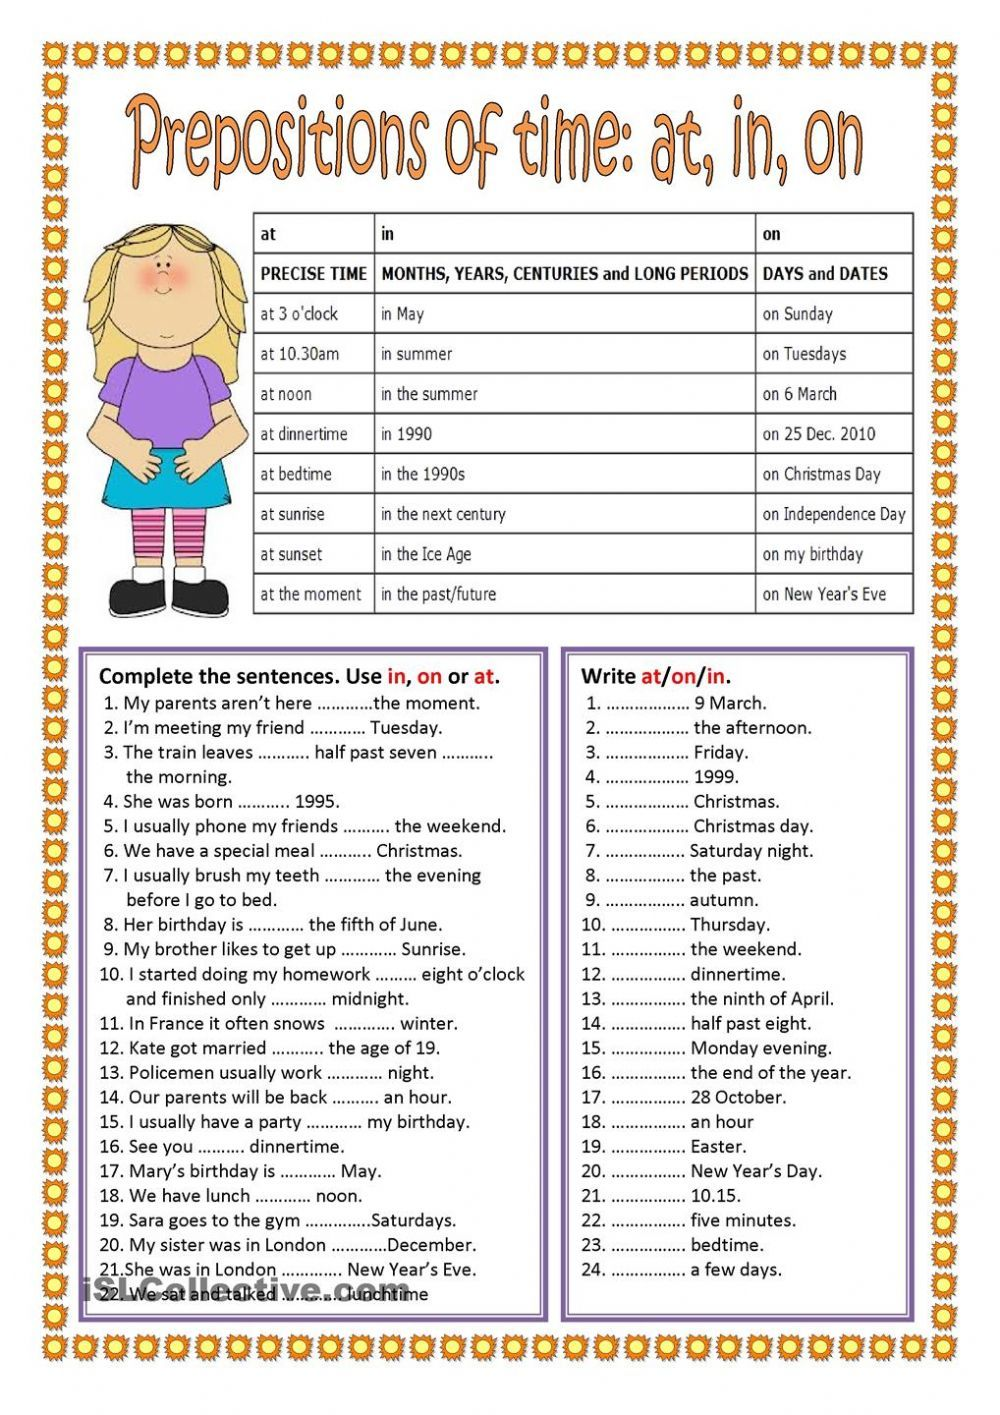 hight resolution of https://dubaikhalifas.com/prepositions-of-time-at-in-on-interactive-worksheet-in-2020-prepositions-english-grammar/